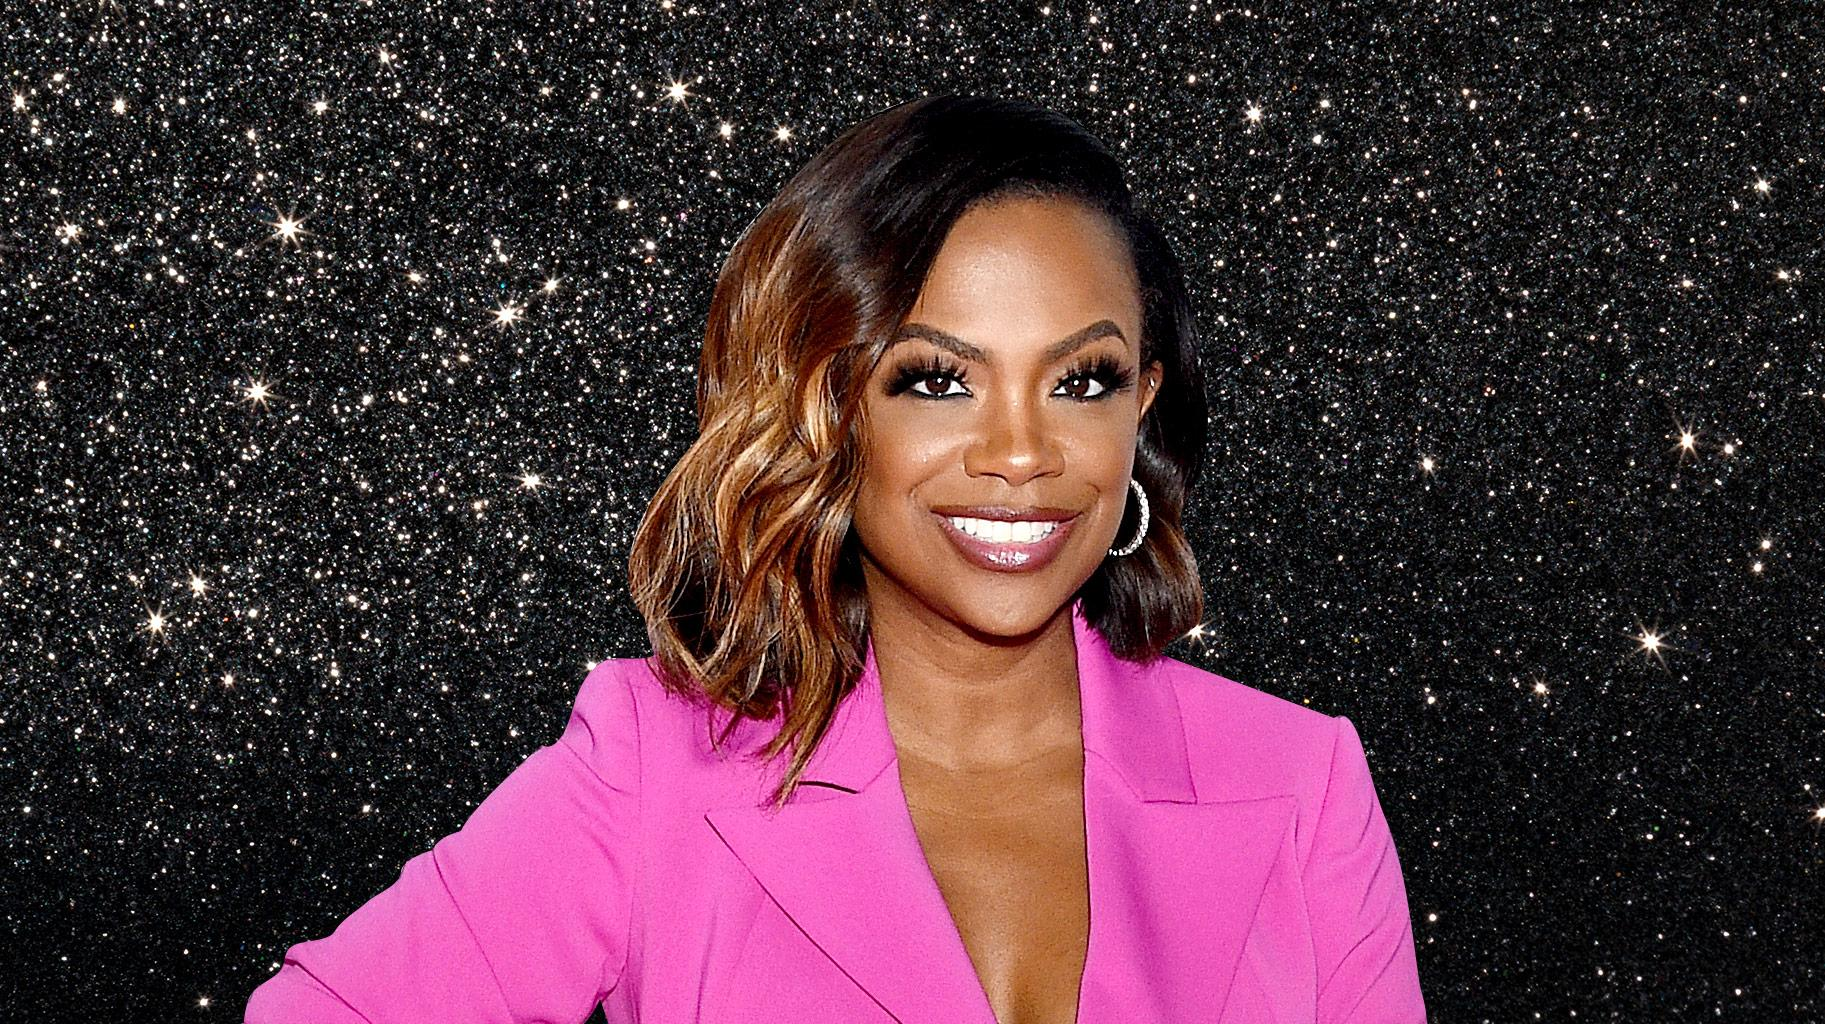 Kandi Burruss Is Featured On 'The Chi', Season 3 - Check Out Her Photo From The Set